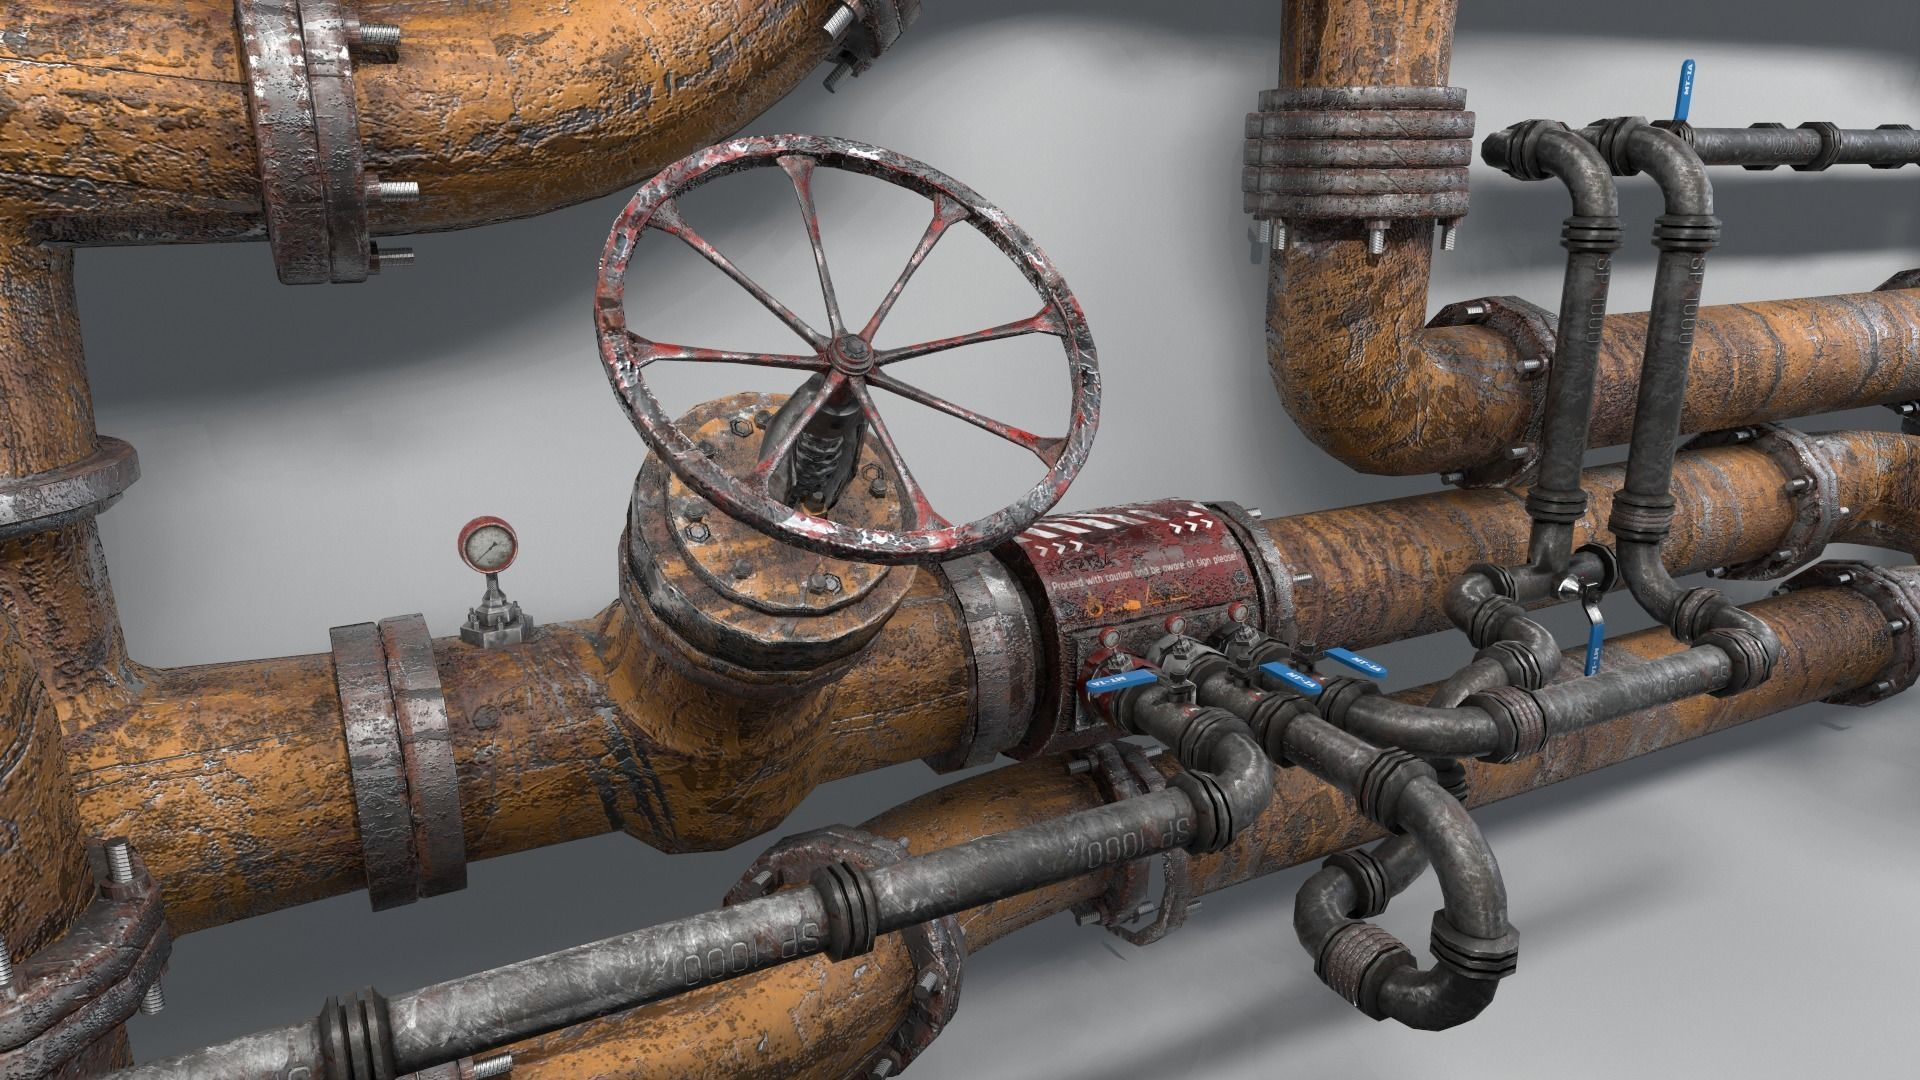 Modular Industrial Pipes